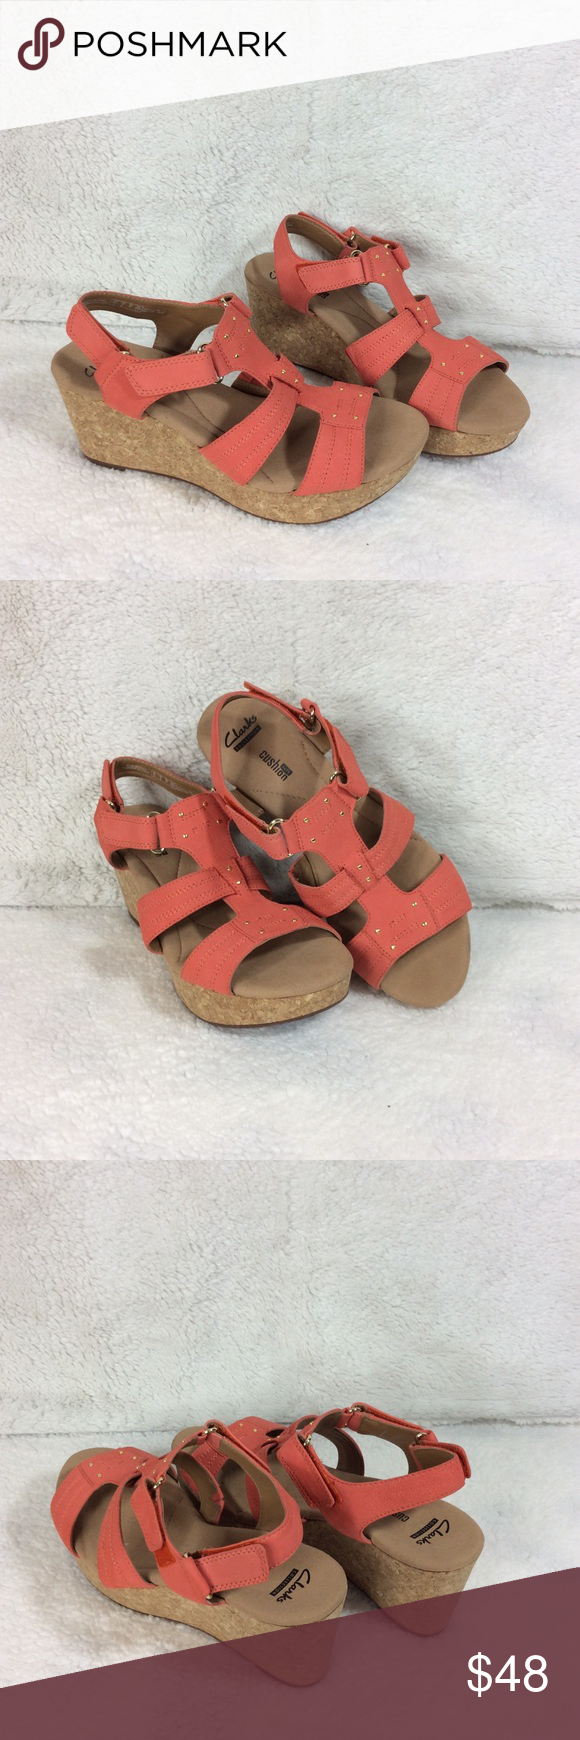 Clarks Annadel Orchid Coral Wedge Sandal Sz 9 Clarks